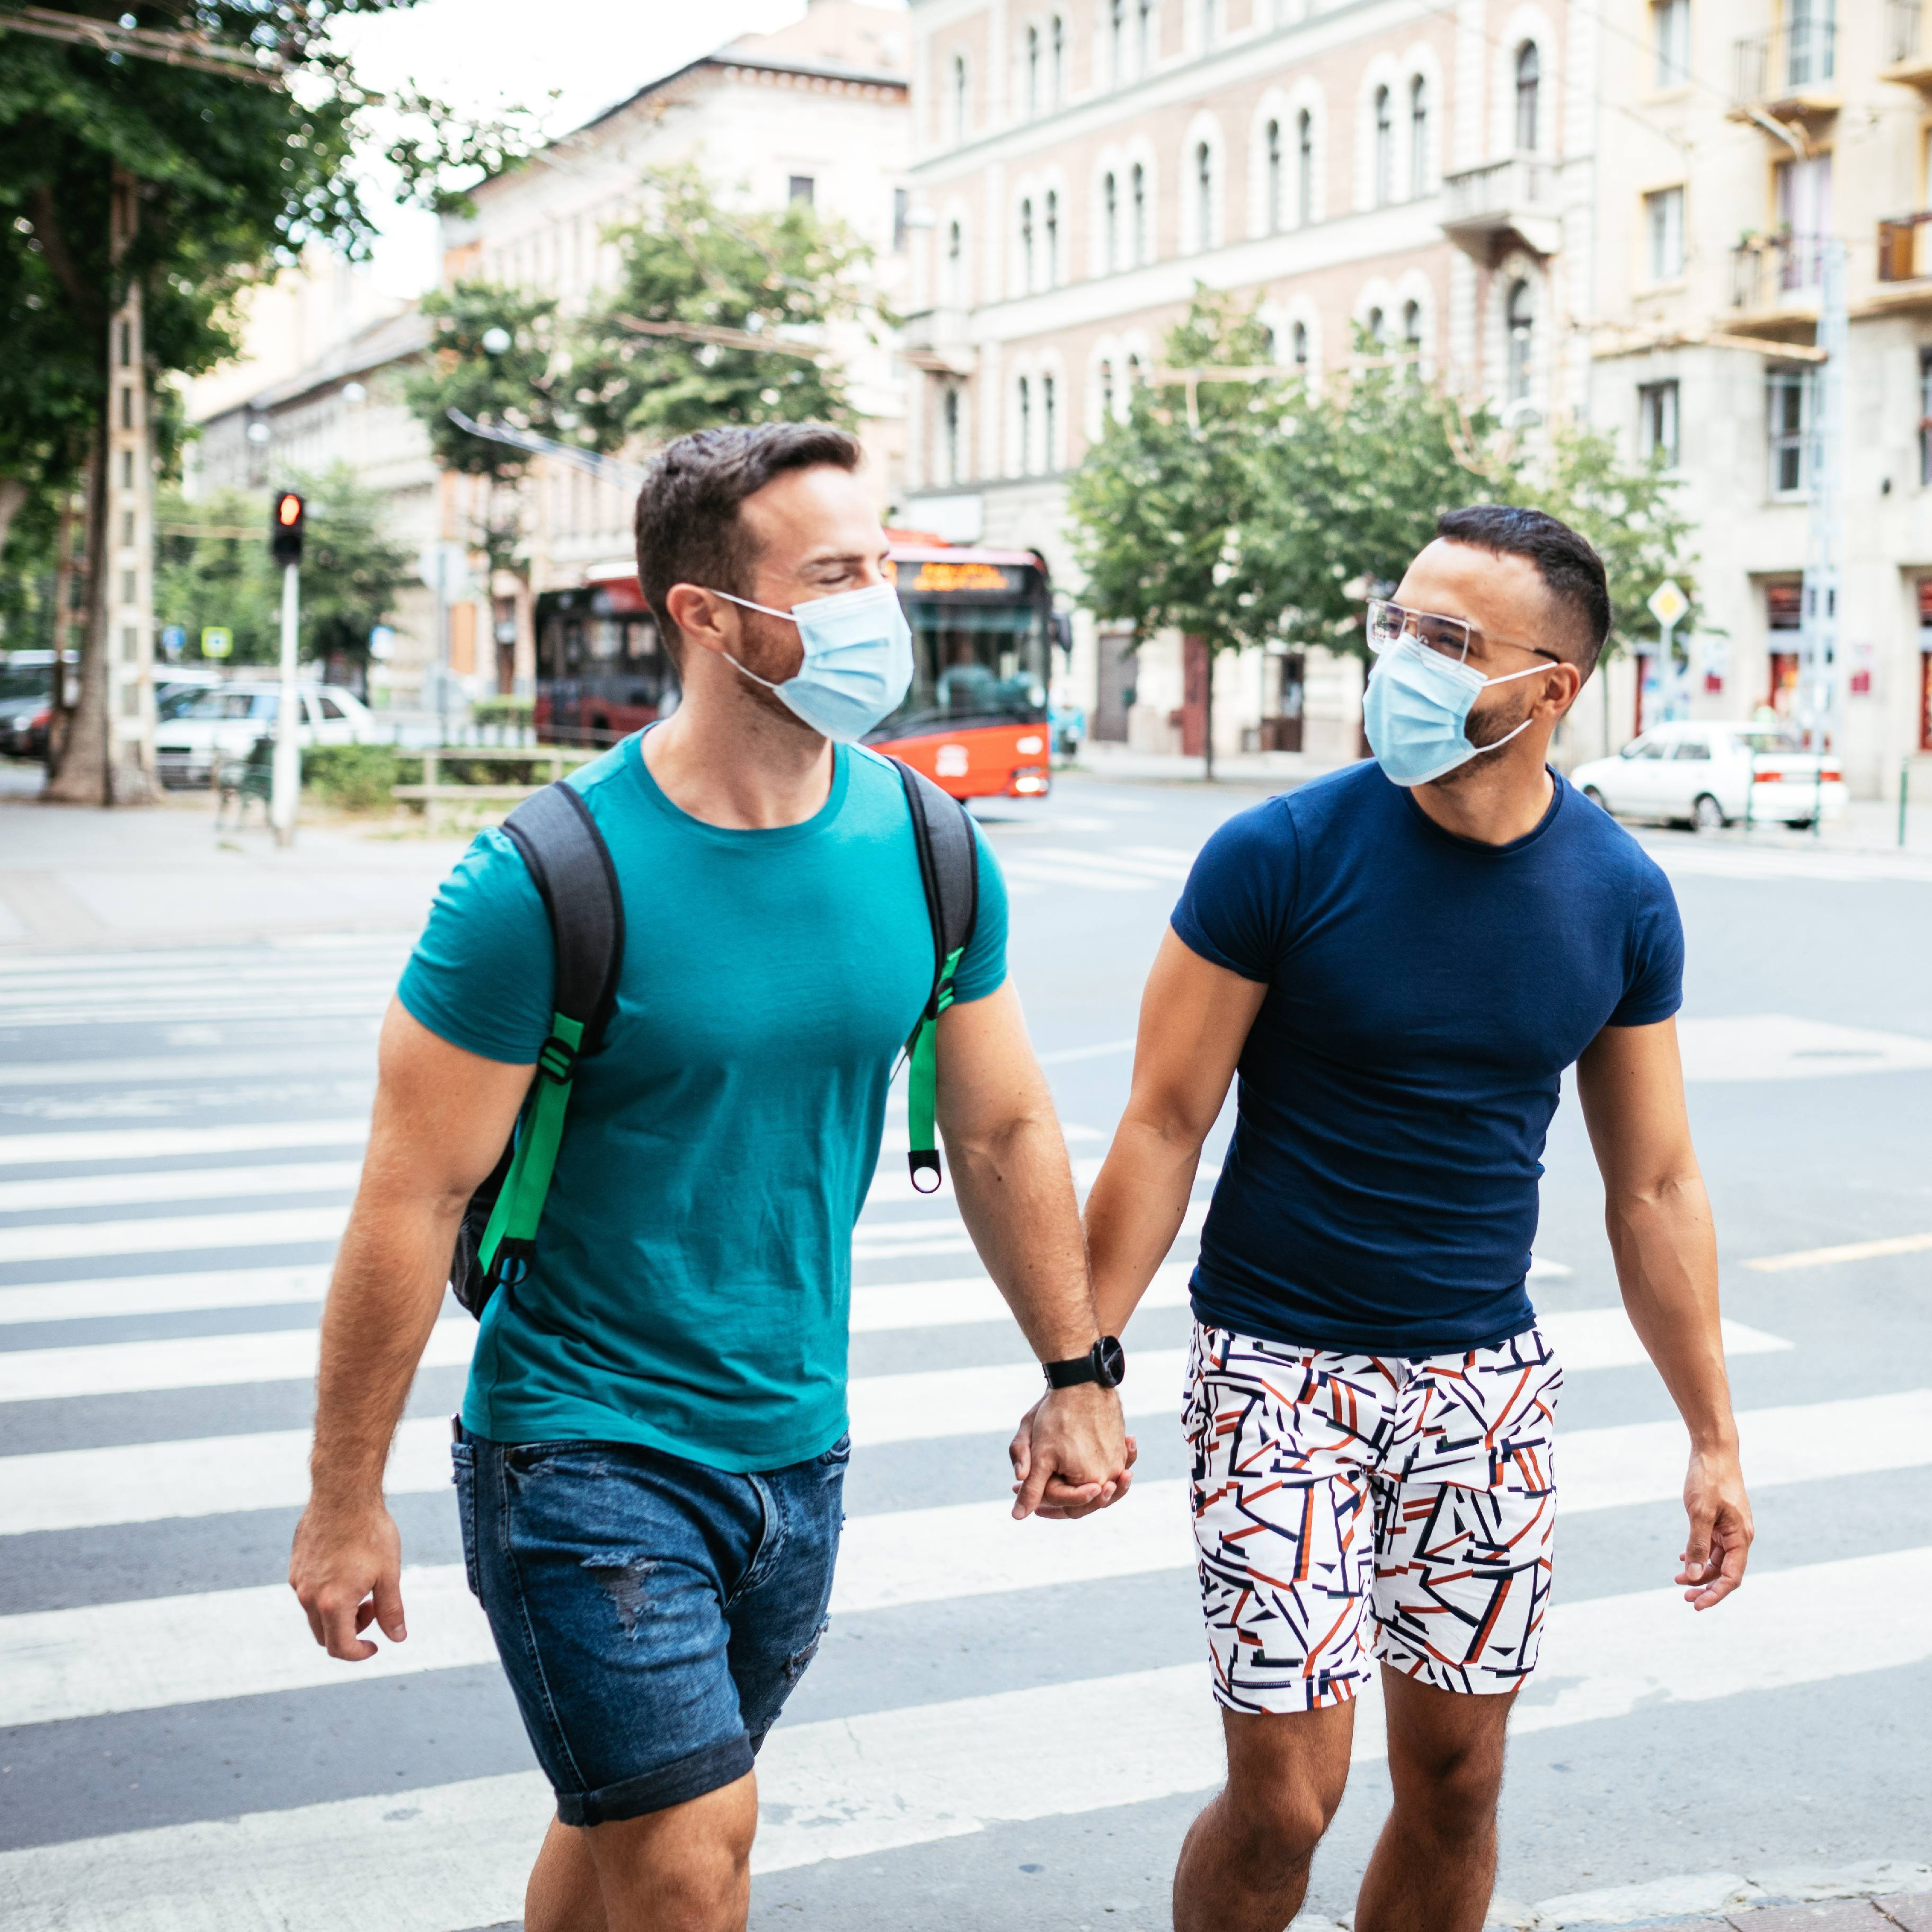 a gay couple walking together on a street, holding hands and wearing face masks